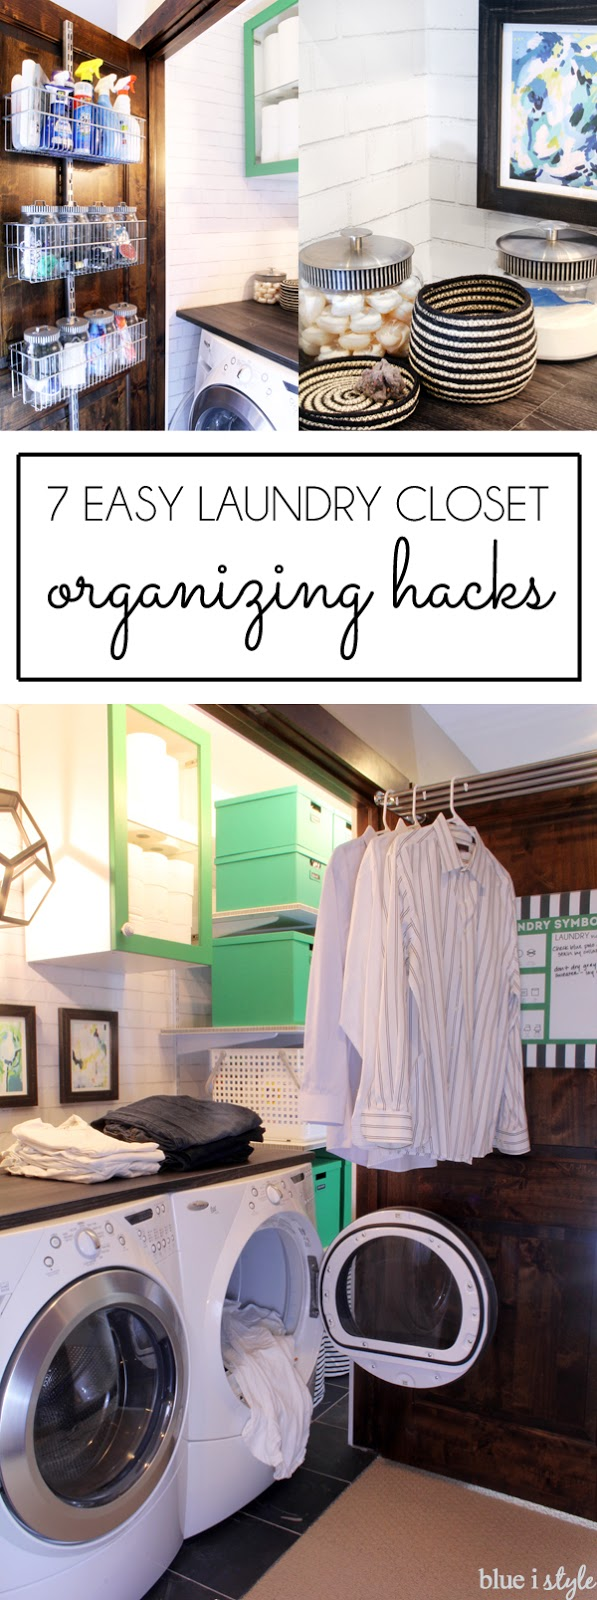 Laundry Closet Organizing Hacks